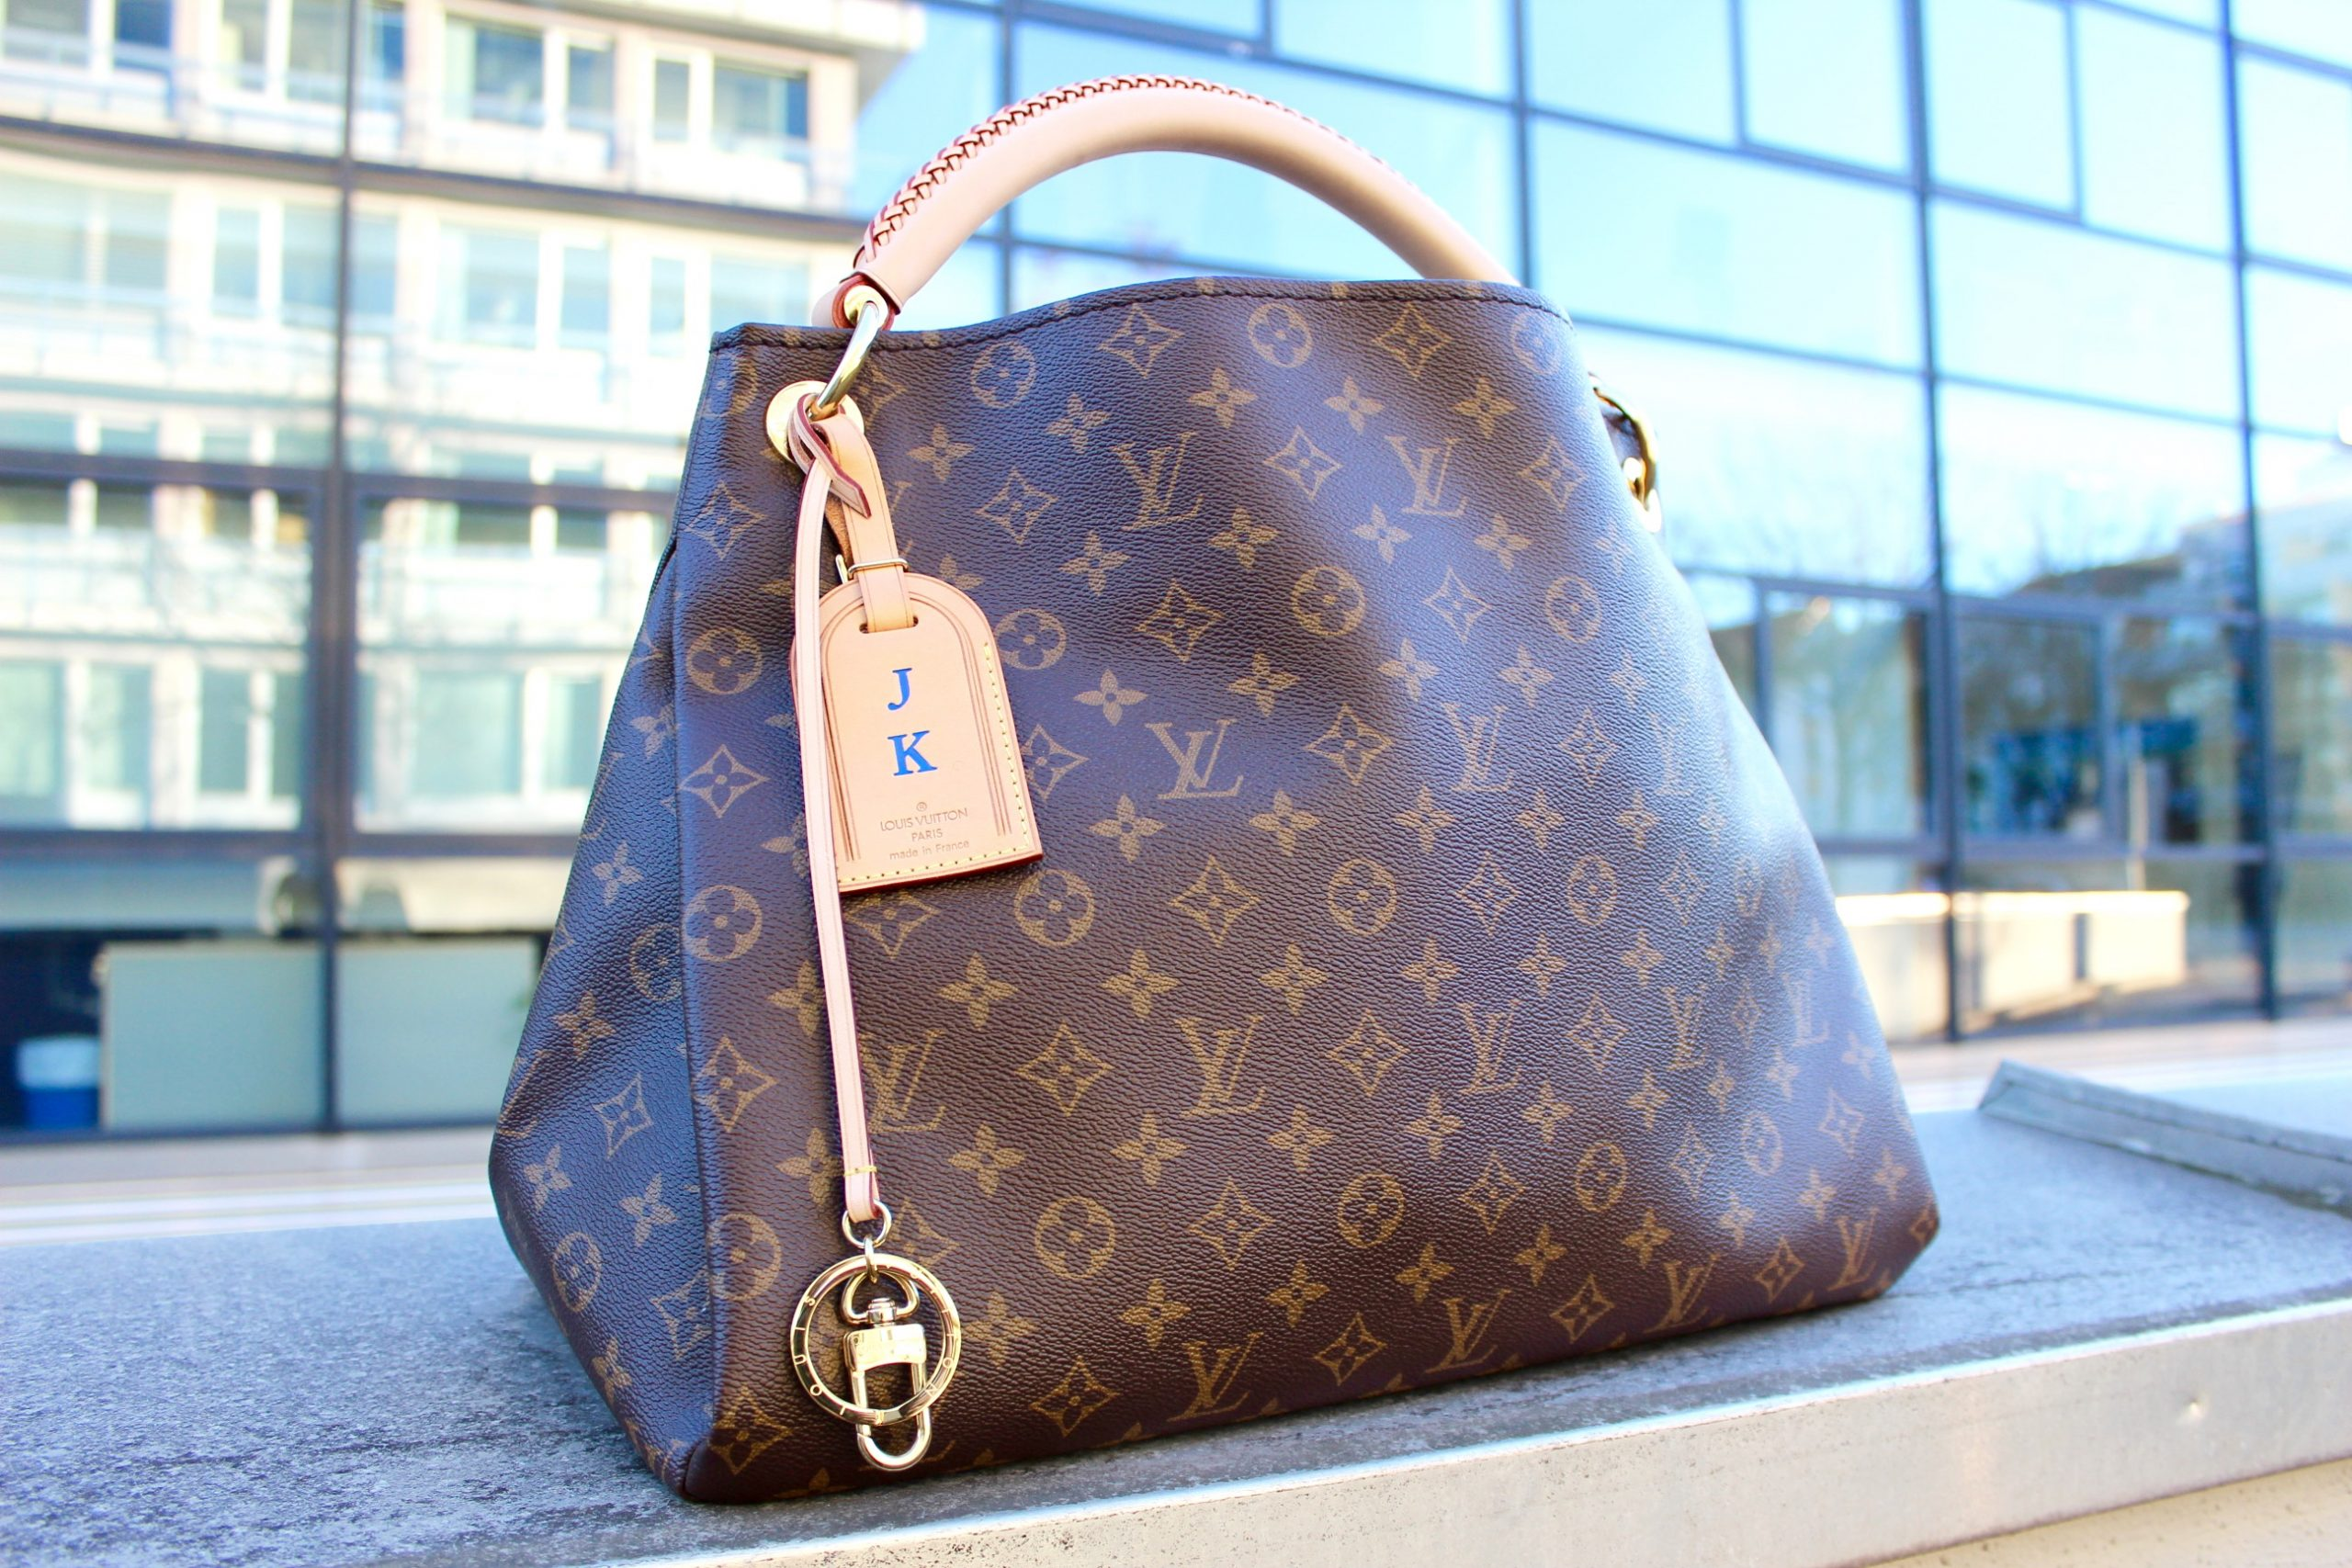 Louis Vuitton Artsy Review Jennitestet Pepper And Gold Fashion Bags Lieblingstasche Rezension Canvas Monogram Alcantara LV